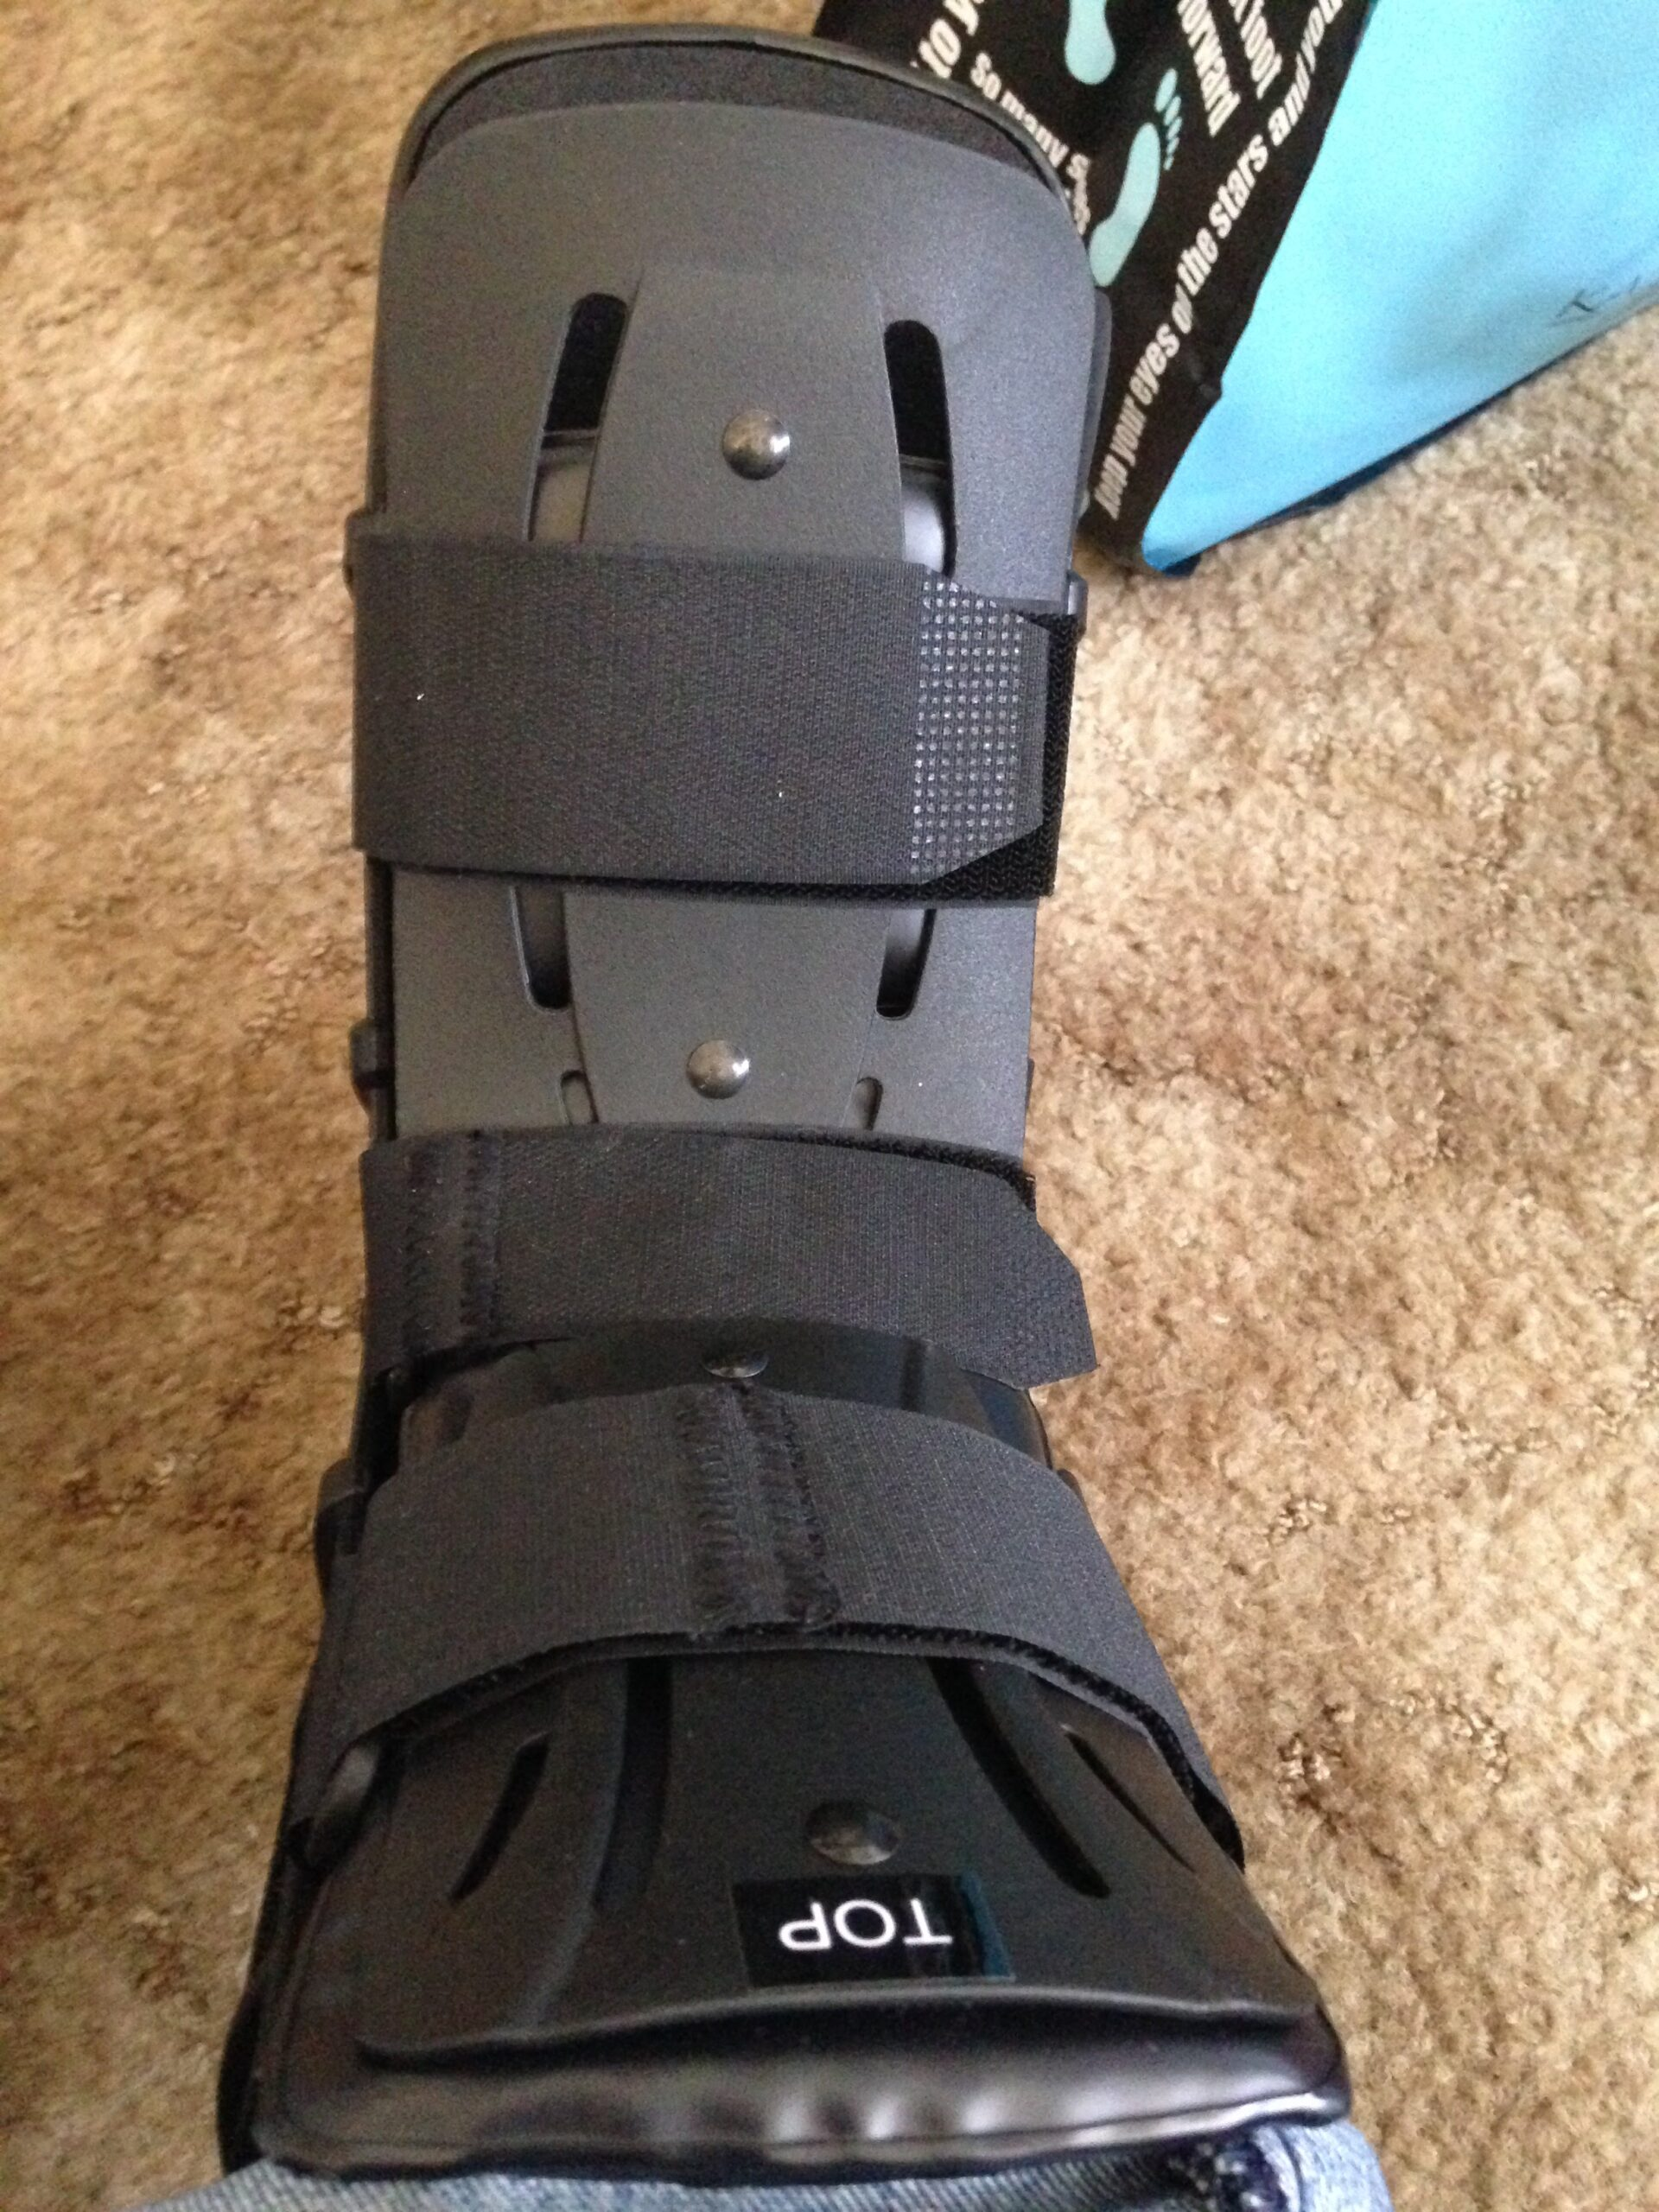 the real boot, The boot I wore during our trip to Dallas Texas.